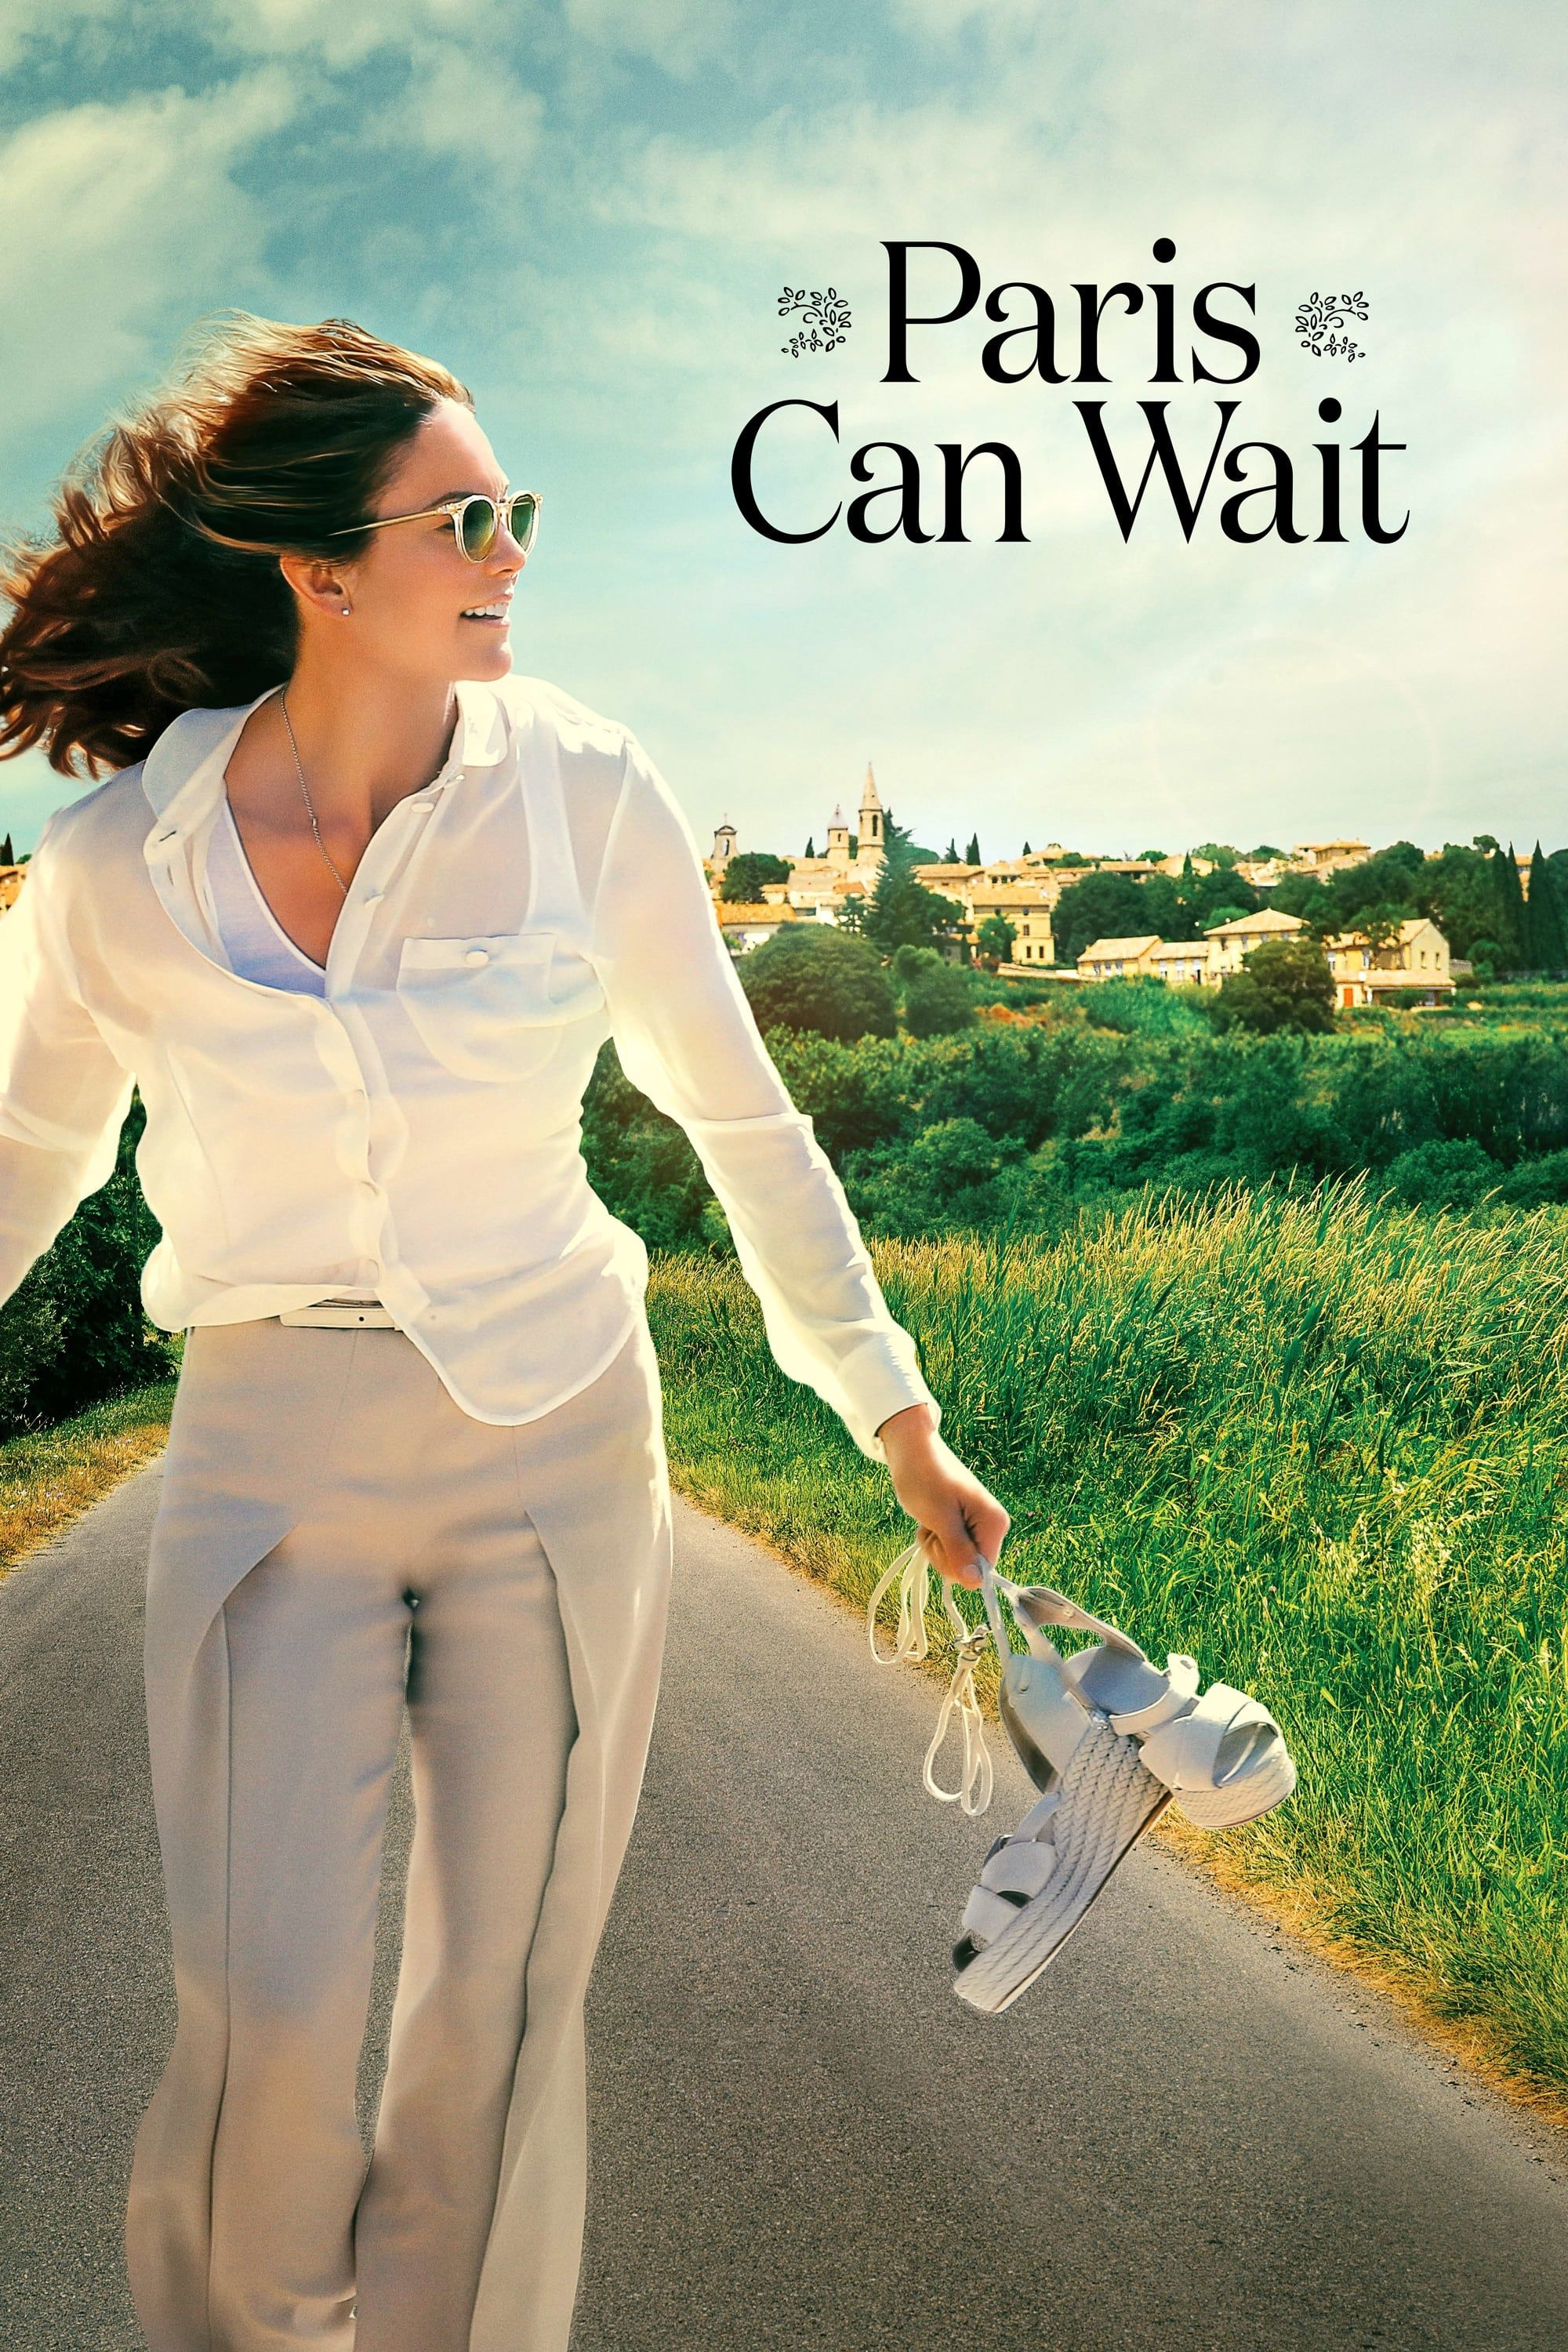 Paris Can Wait  streaming